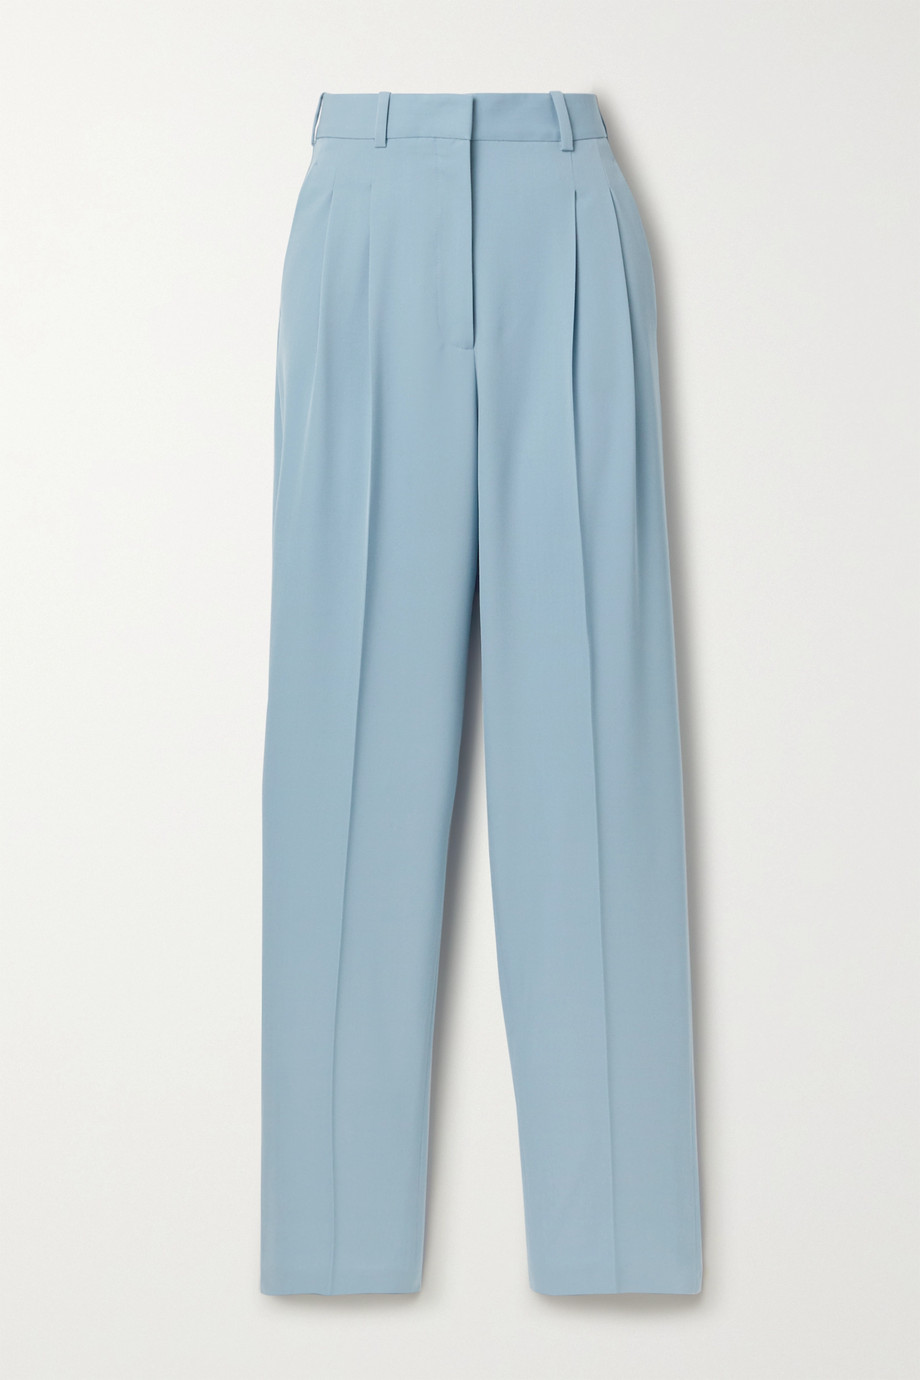 Stella McCartney Pleated wool-blend twill straight-leg pants